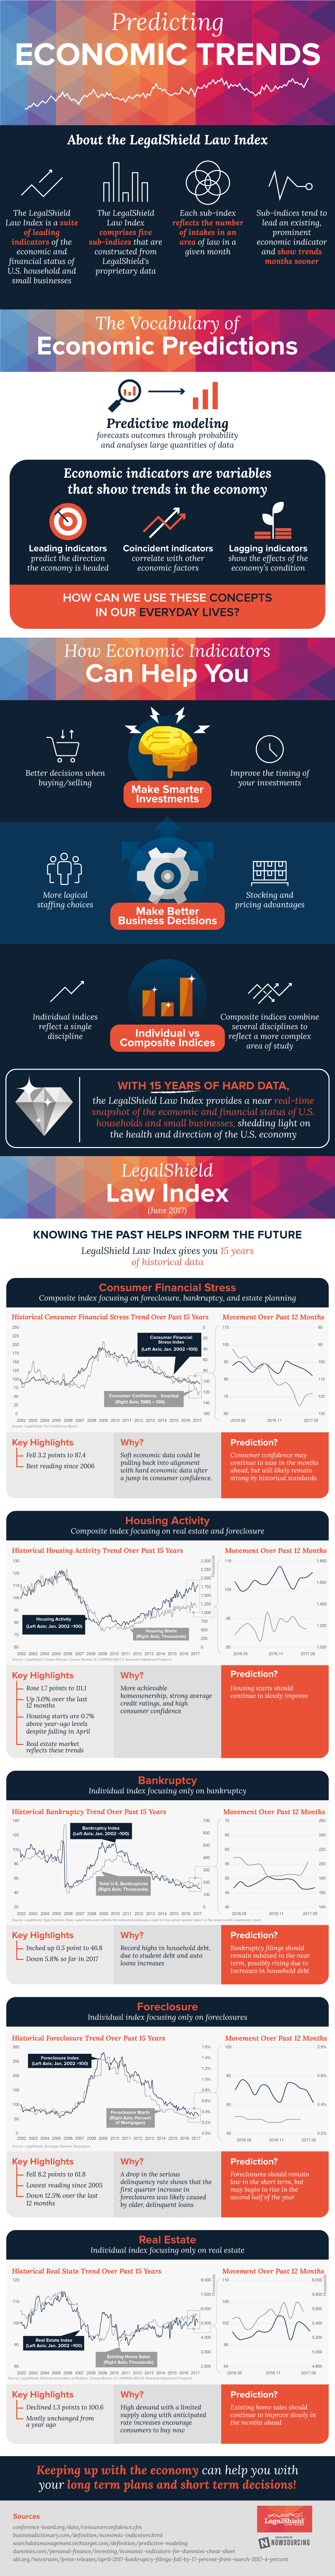 What Legal Indices Can Tell Us About Economic Trends